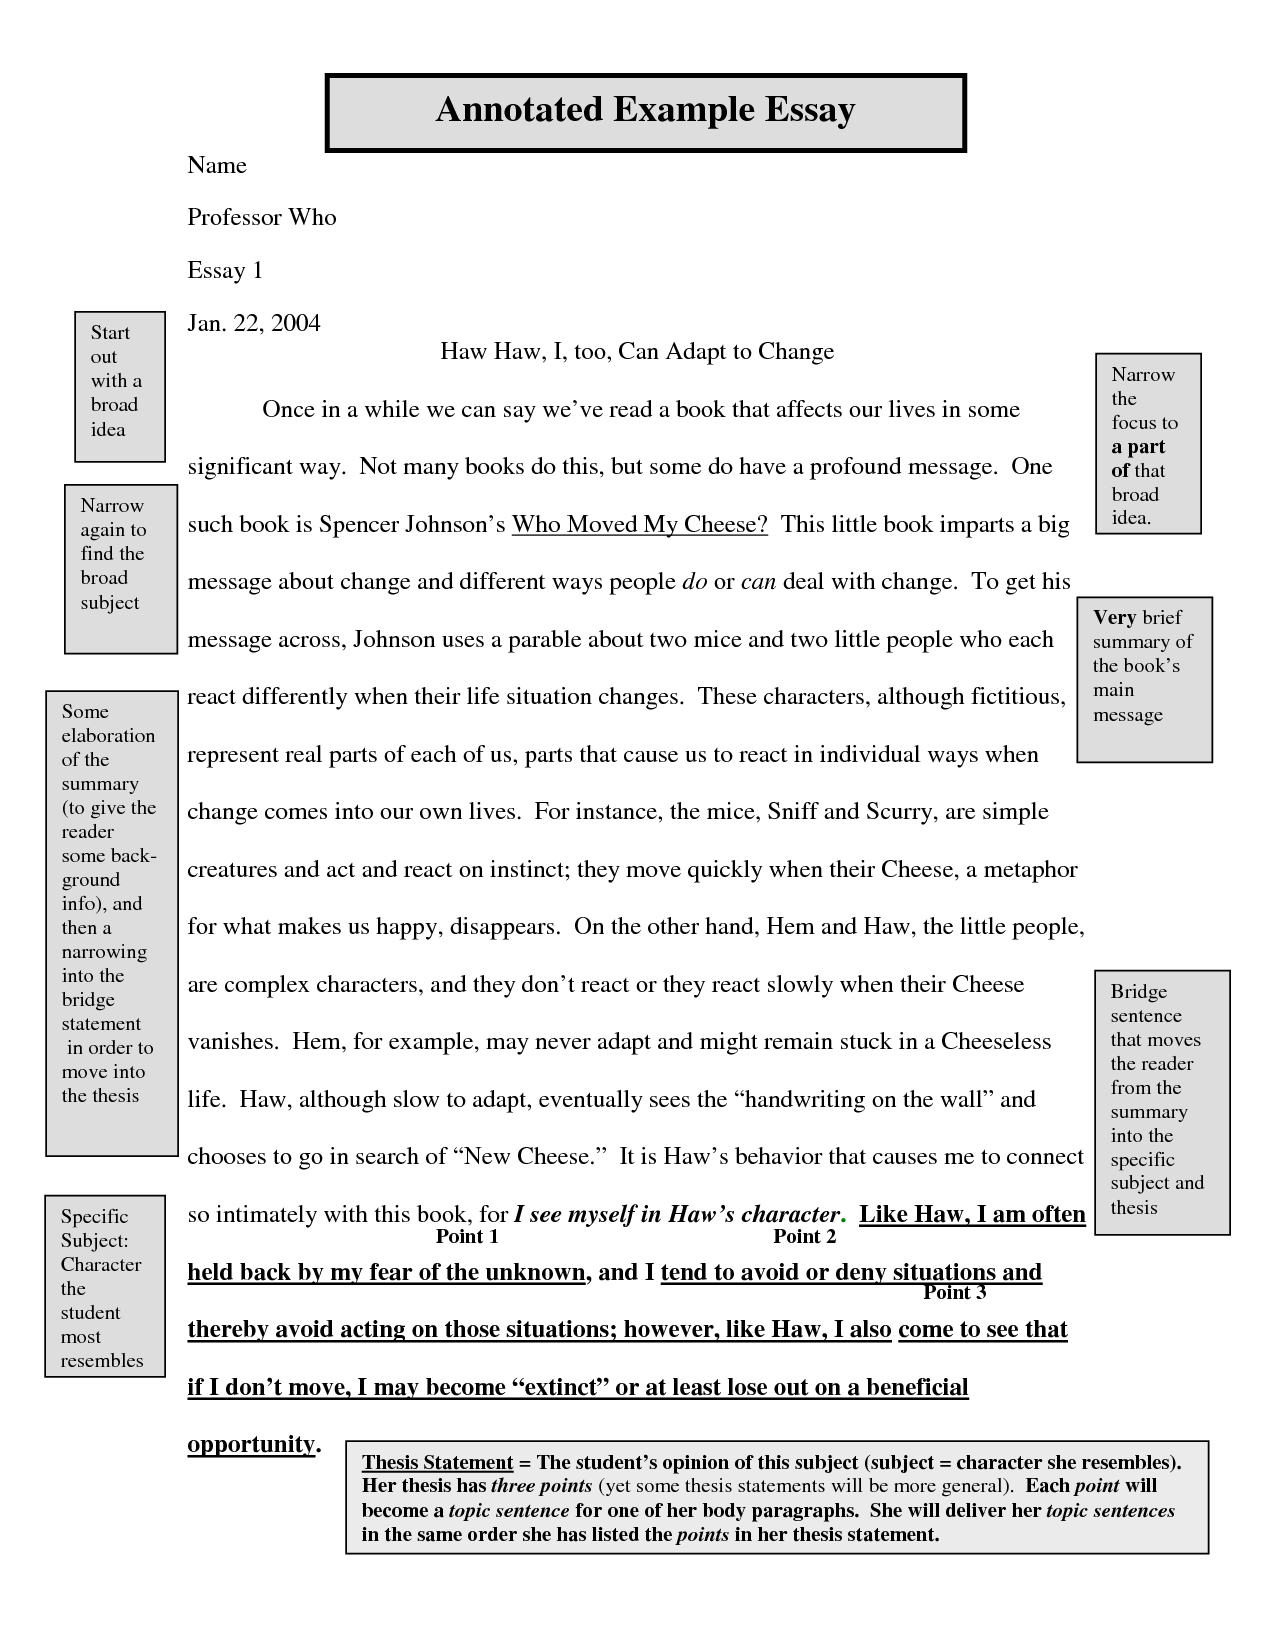 thesis statement three points Instead of listing two or three distinct points, a thesis can list one overarching point that all body paragraphs tie into example: good vs evil is the main theme of lewis's narnia series, as is made clear through the struggles the main characters face in each book.